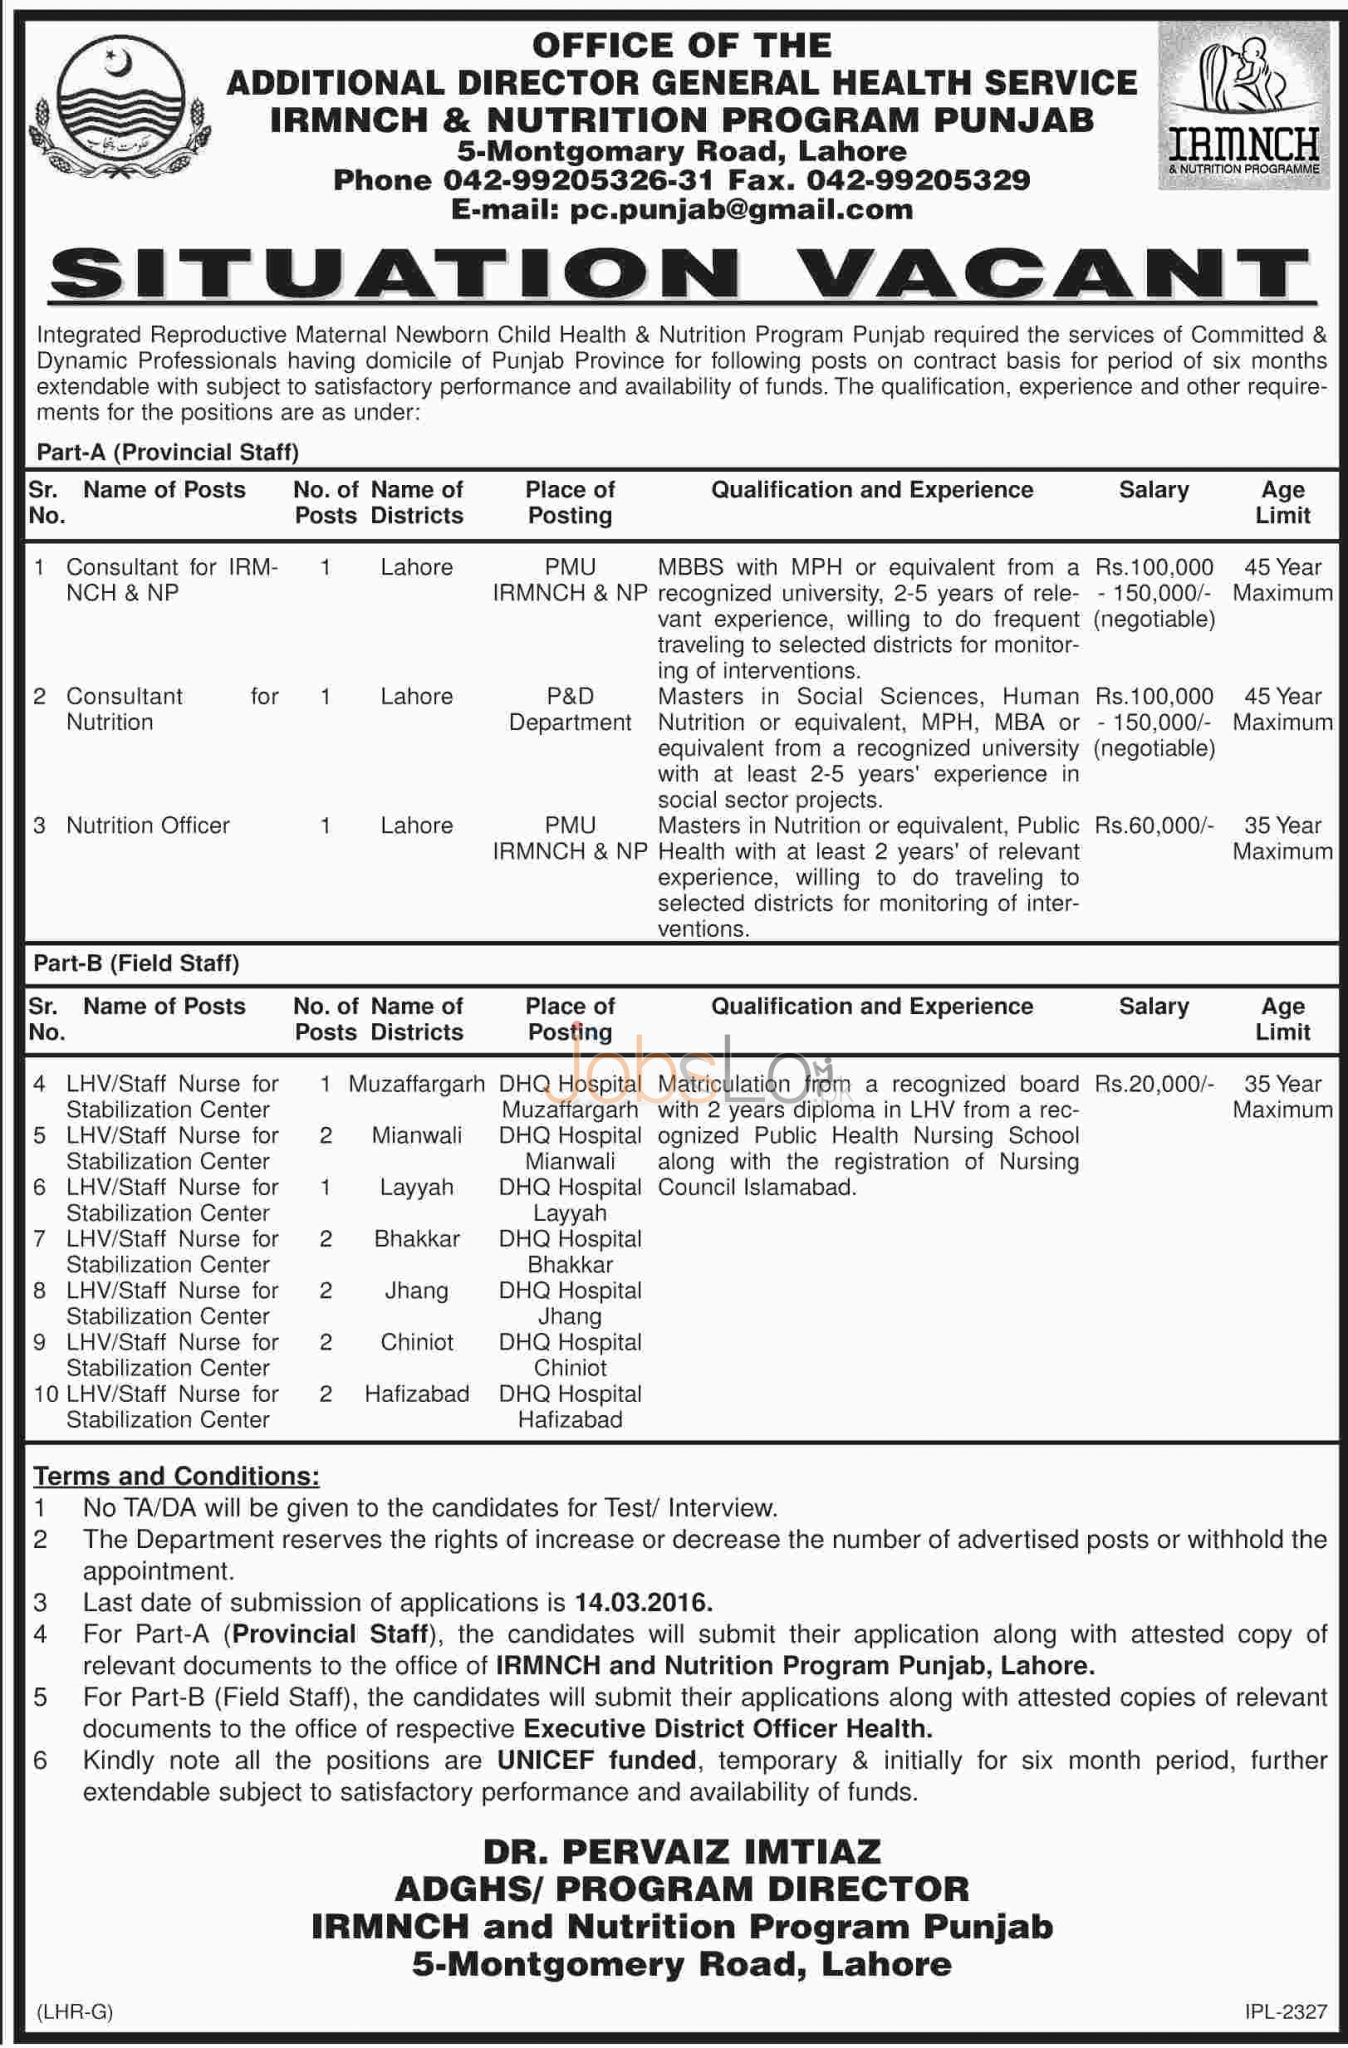 Situations Vacant in IRMNCH & Nutrition Program 03 March 2016 Punjab, Lahore Eligibility Criteria